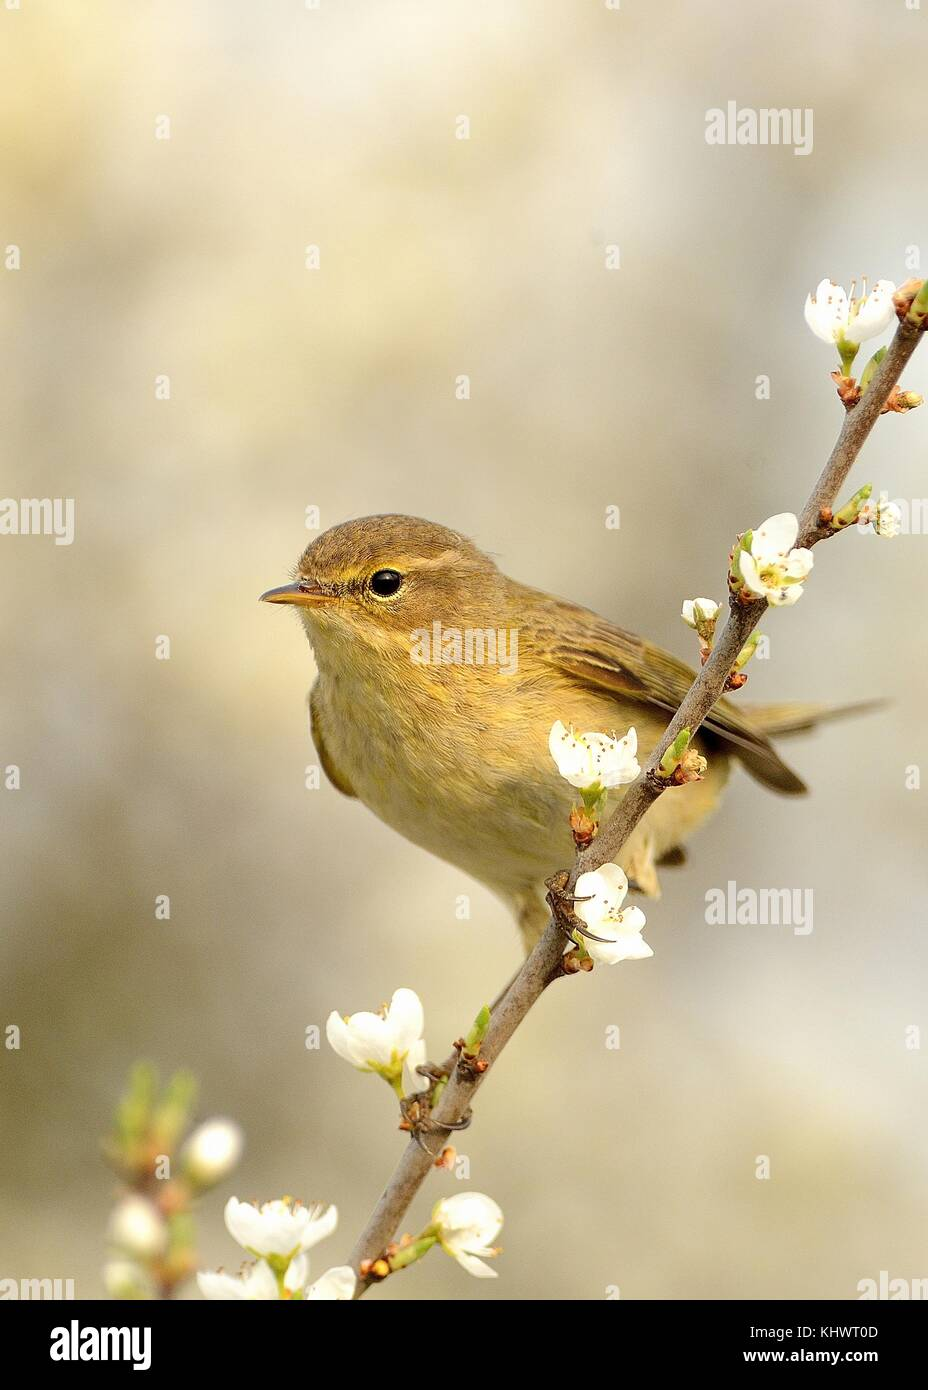 Common Chiffchaff (Phylloscopus collybita) sitting on the blooming branch with flowers, light (white) background, - Stock Image